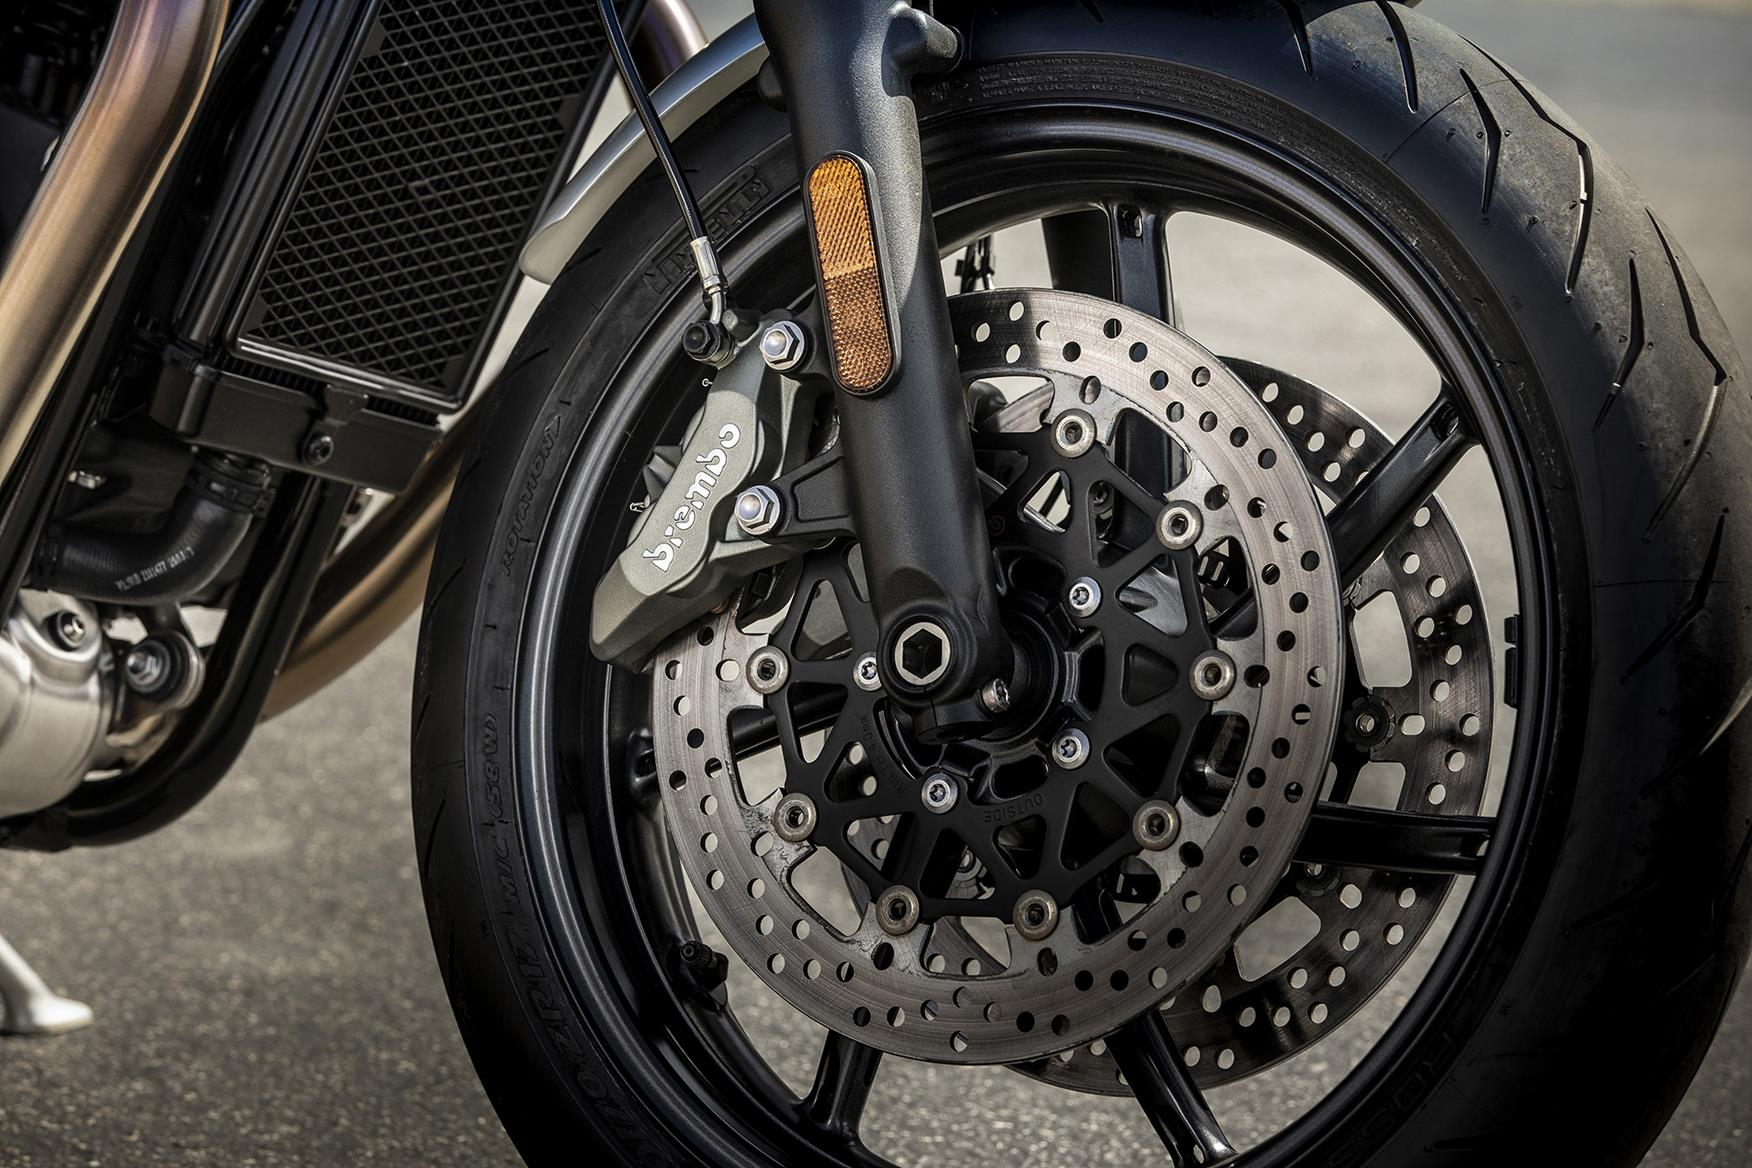 Lighter alloy wheels help shed weight on the Triumph Speed Twin